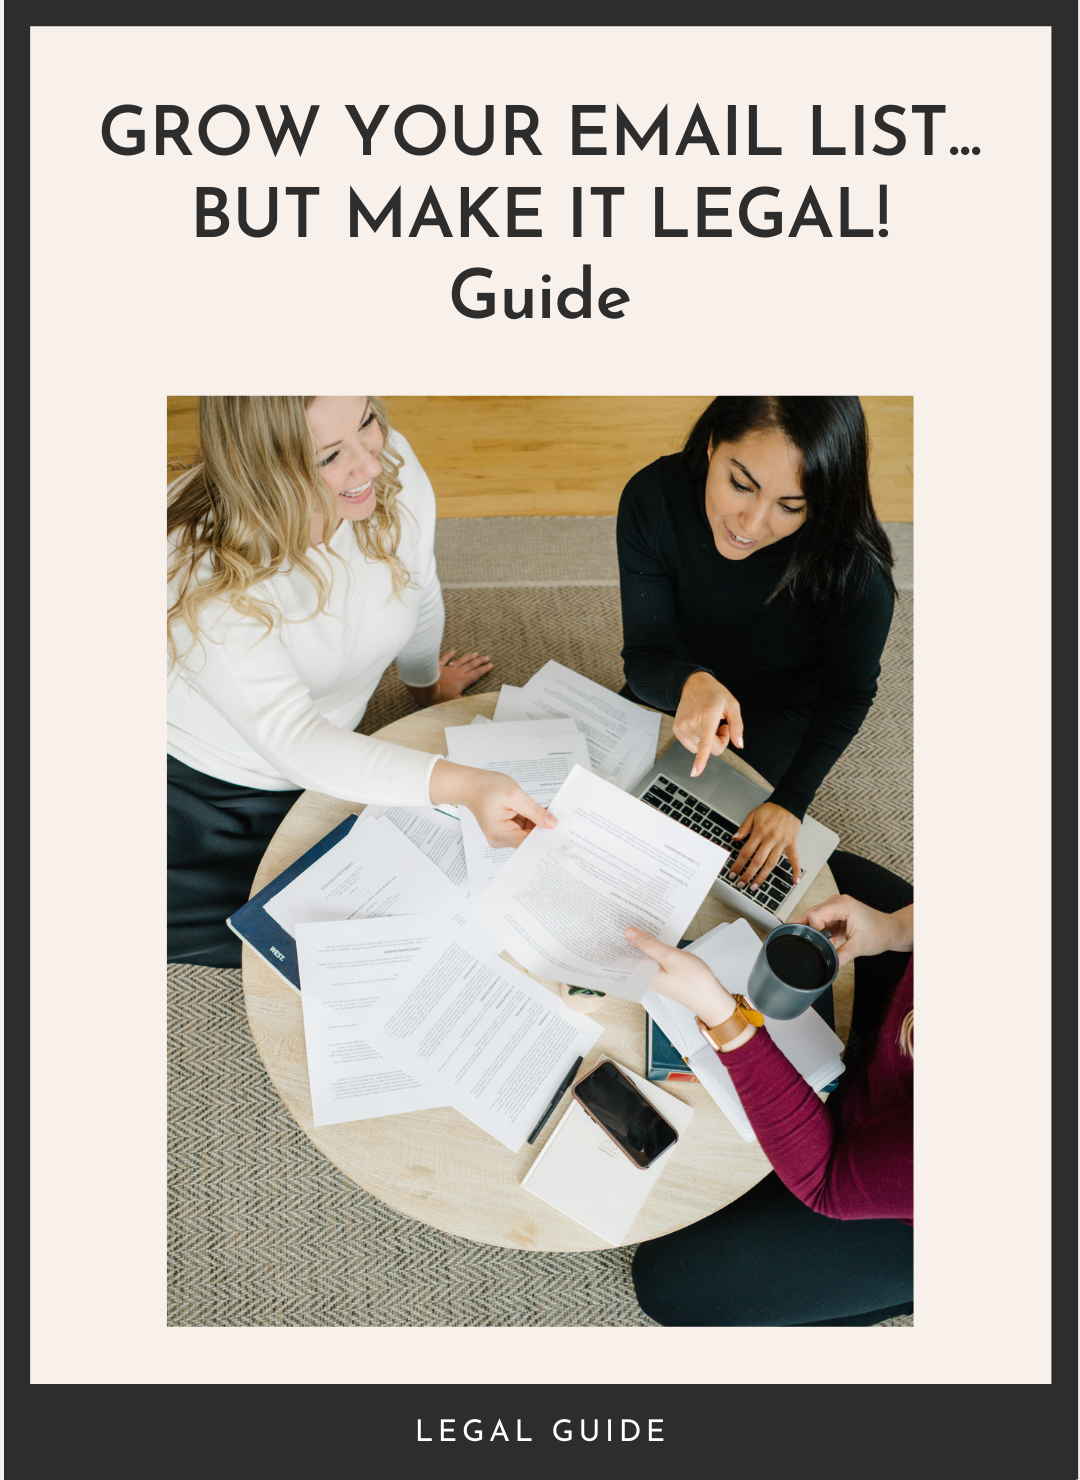 Grow Your Email List But Make It Legal Guide